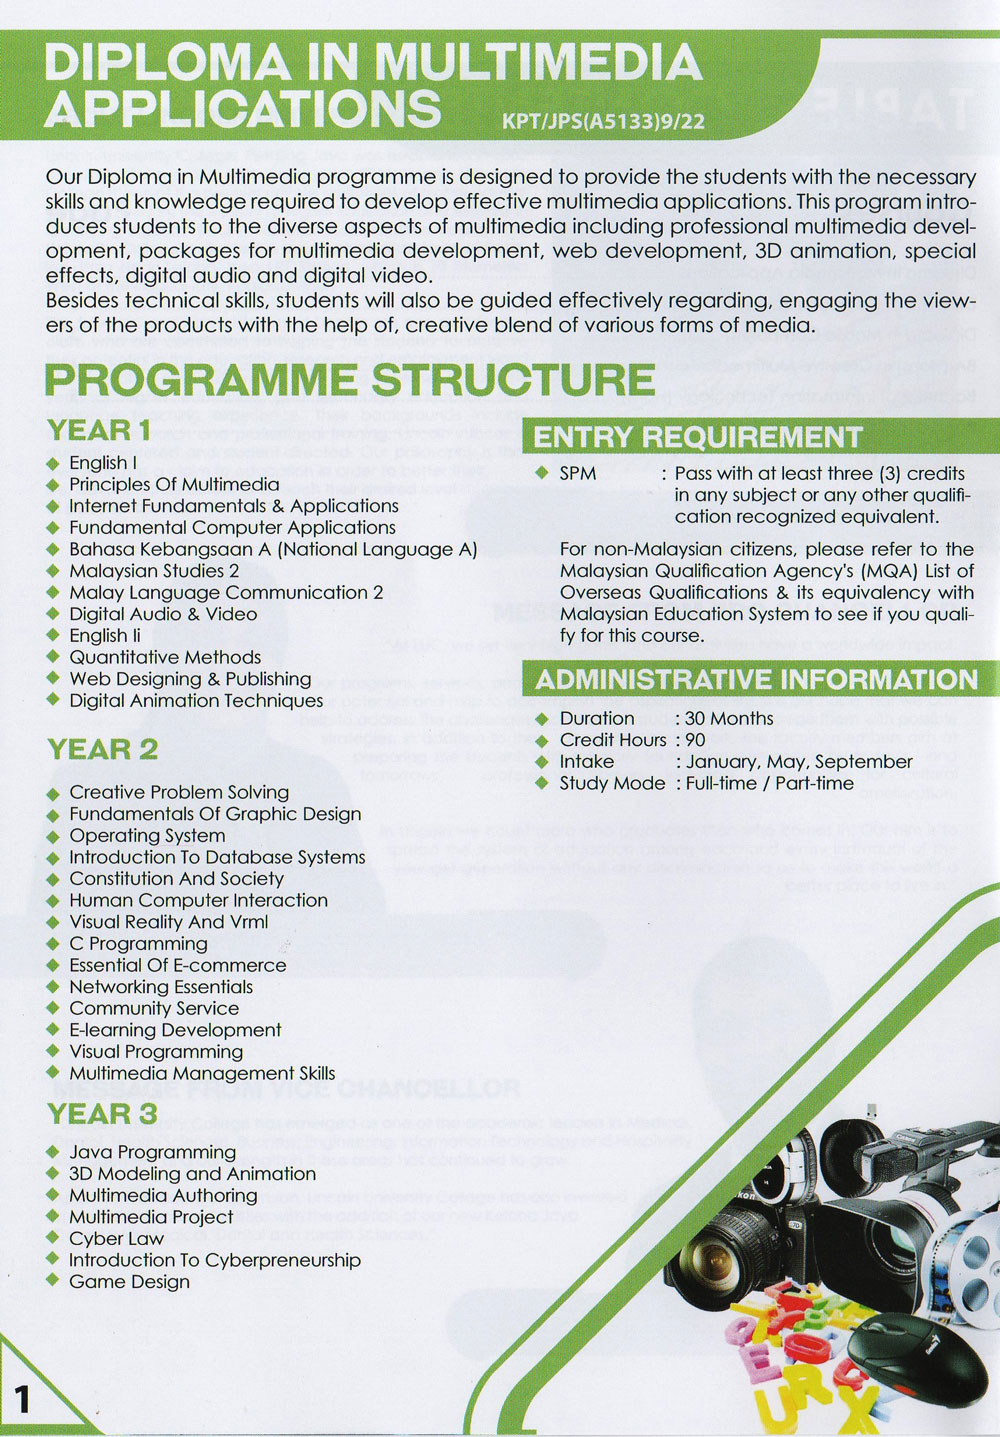 Diploma-In-Multimedia-Applications-Lincoln-University-College